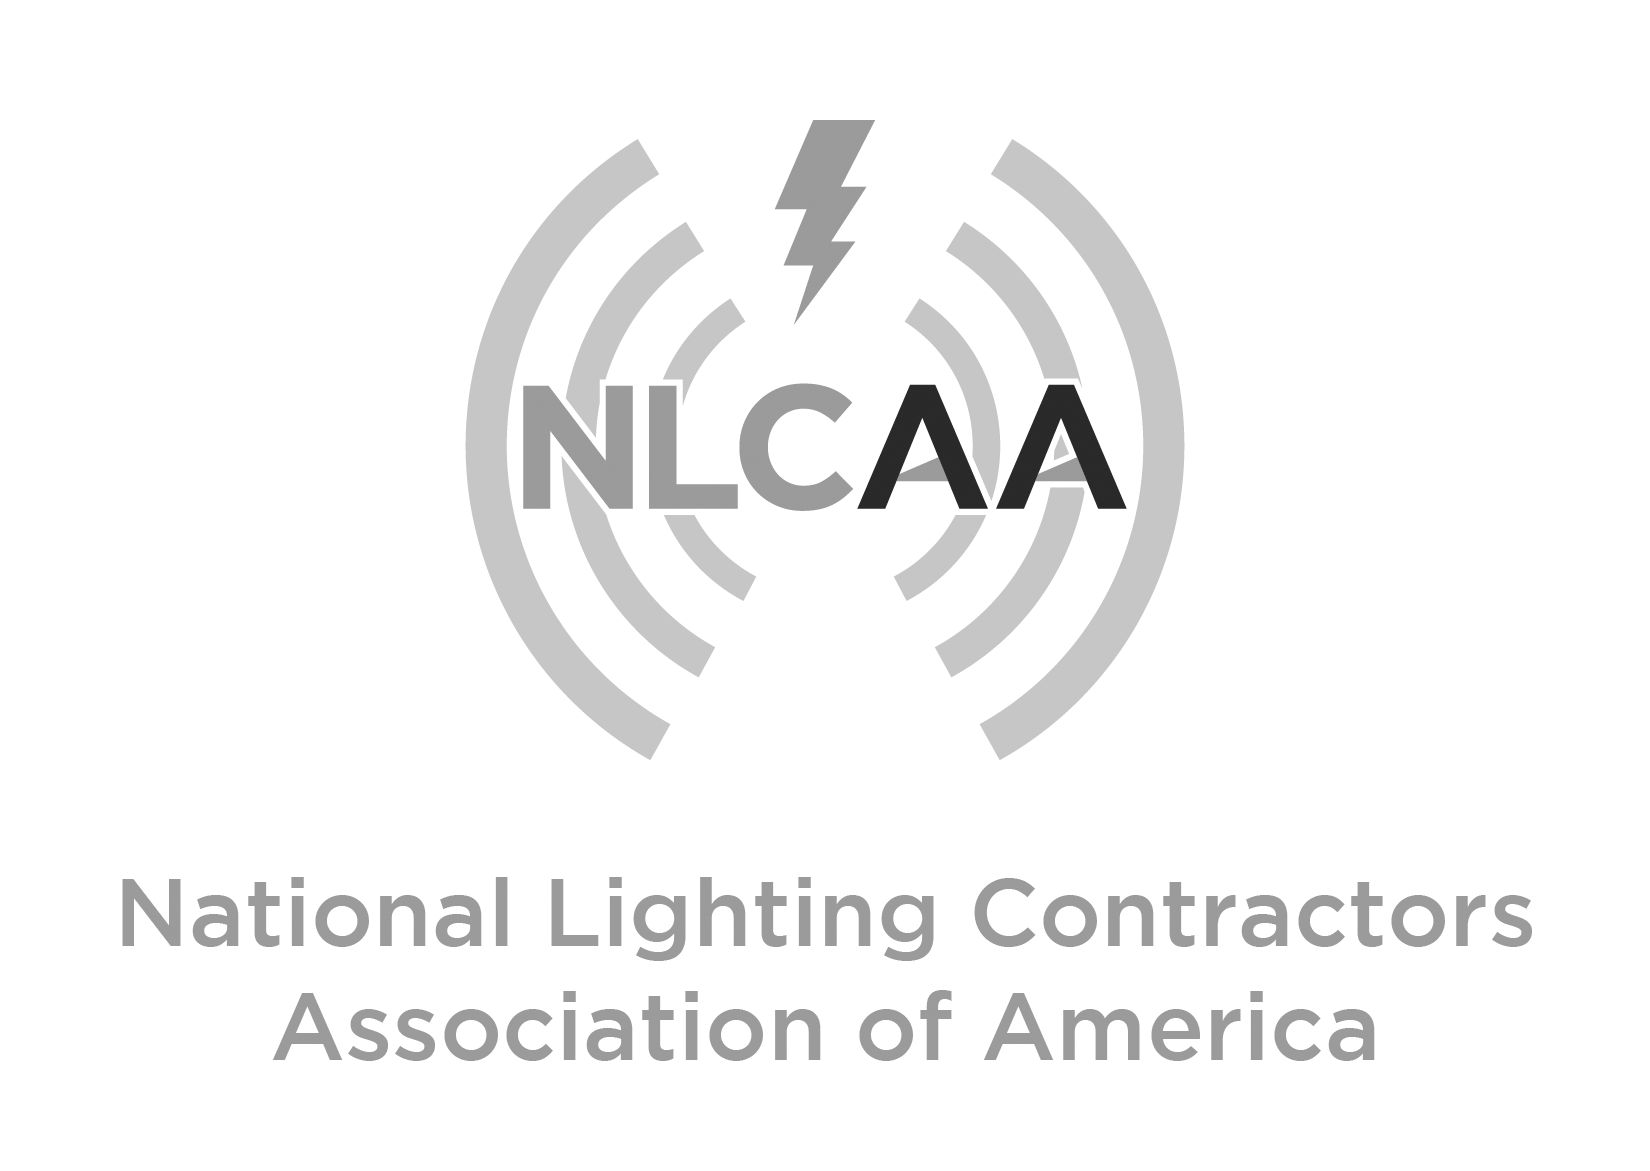 NLCAA - National Lighting Contractors Association of America